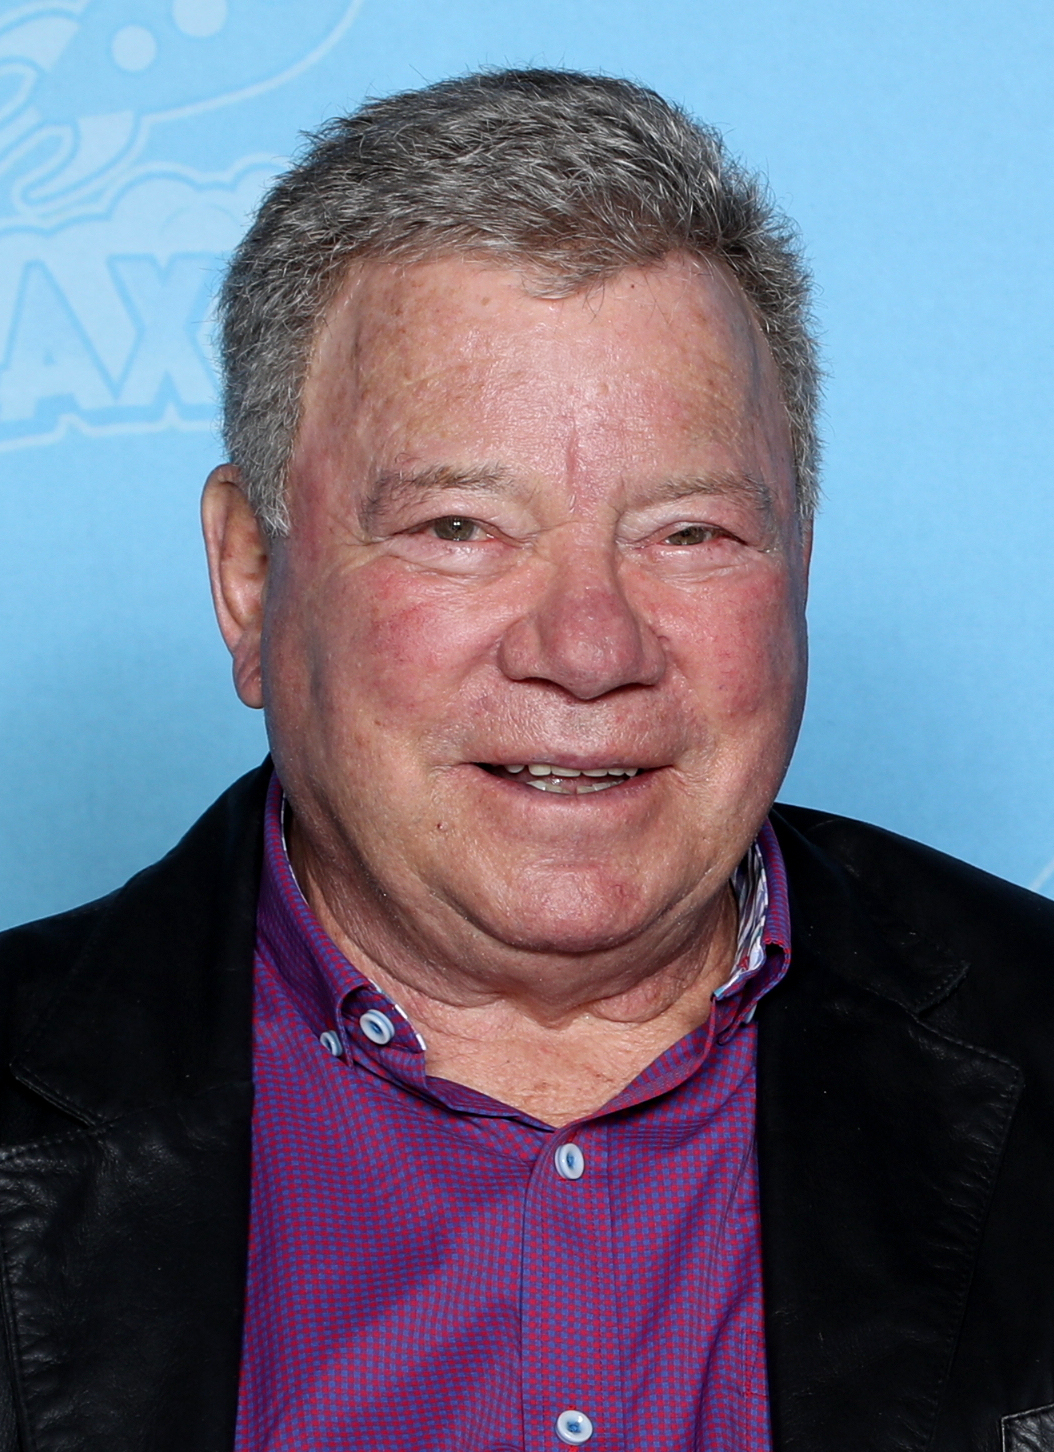 Nys Academy Of Fir Science Christmas Party 2020 William Shatner   Wikipedia